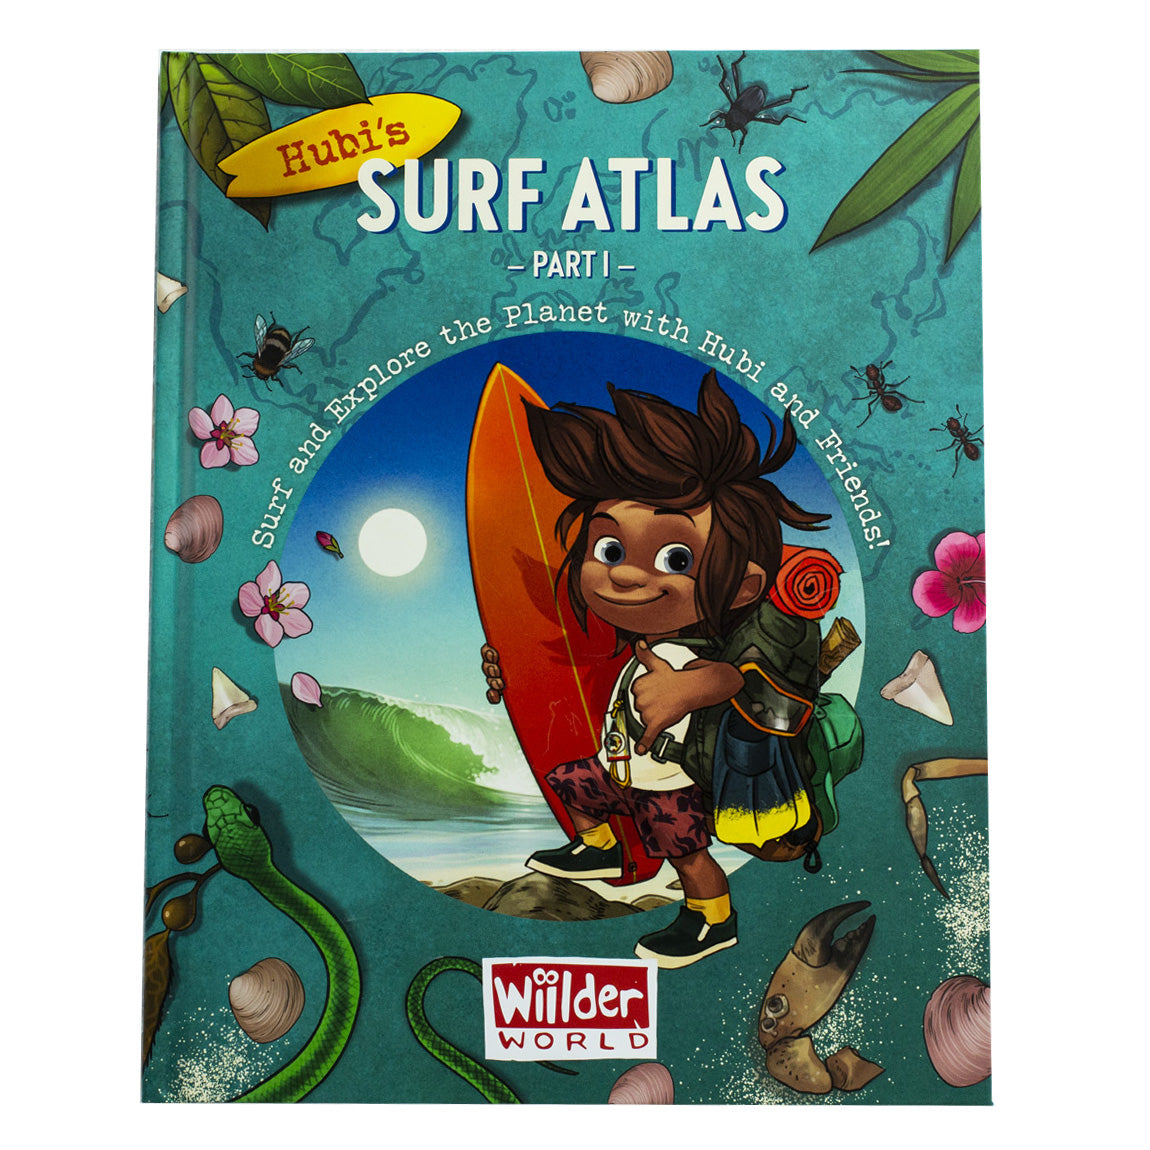 HUBI'S SURF ATLAS PART 1